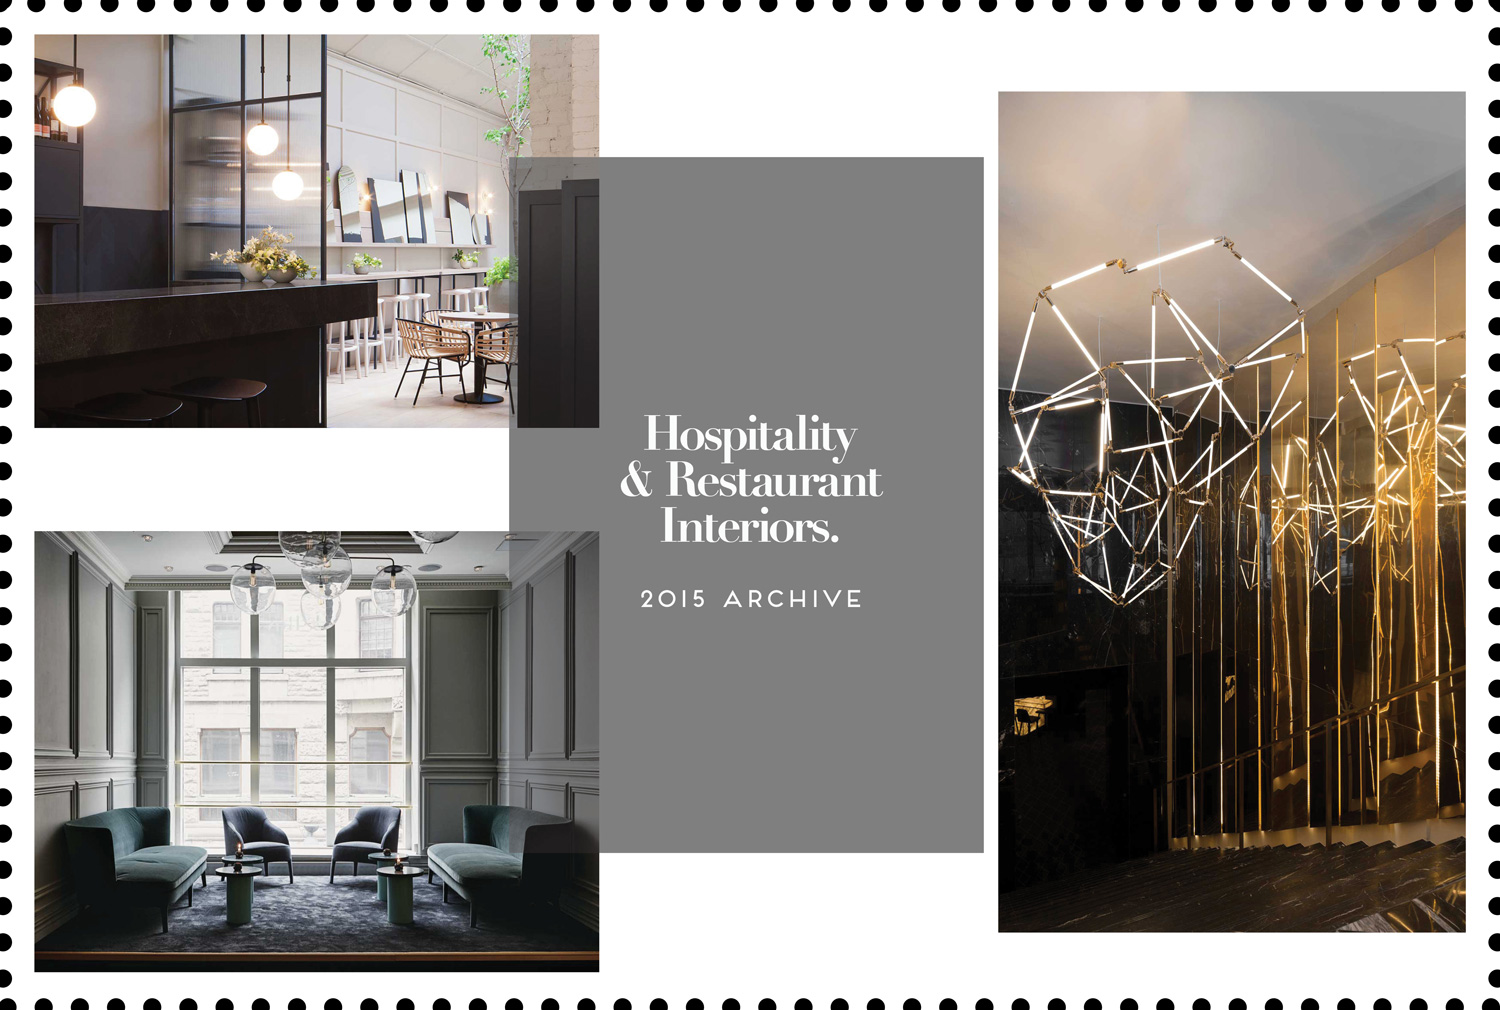 Hospitality restaurant interiors 2015 archive yellowtrace